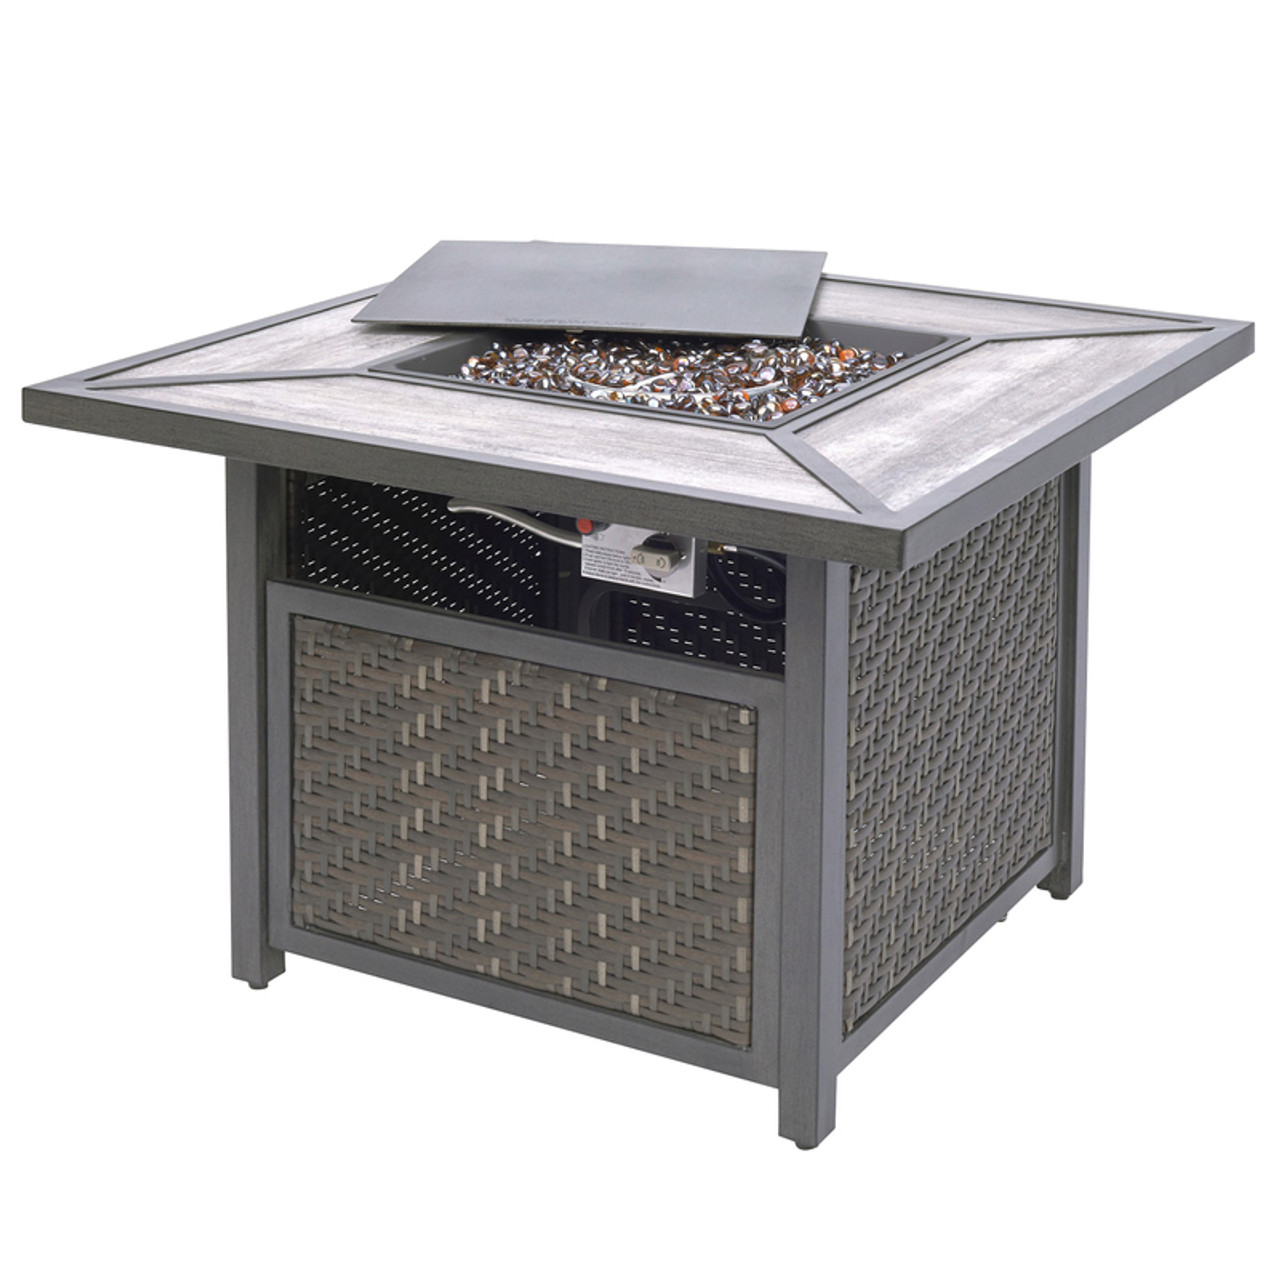 living accents gas fire table propane fire table 24 61 in h x 37 2 in w x 37 2 in d steel